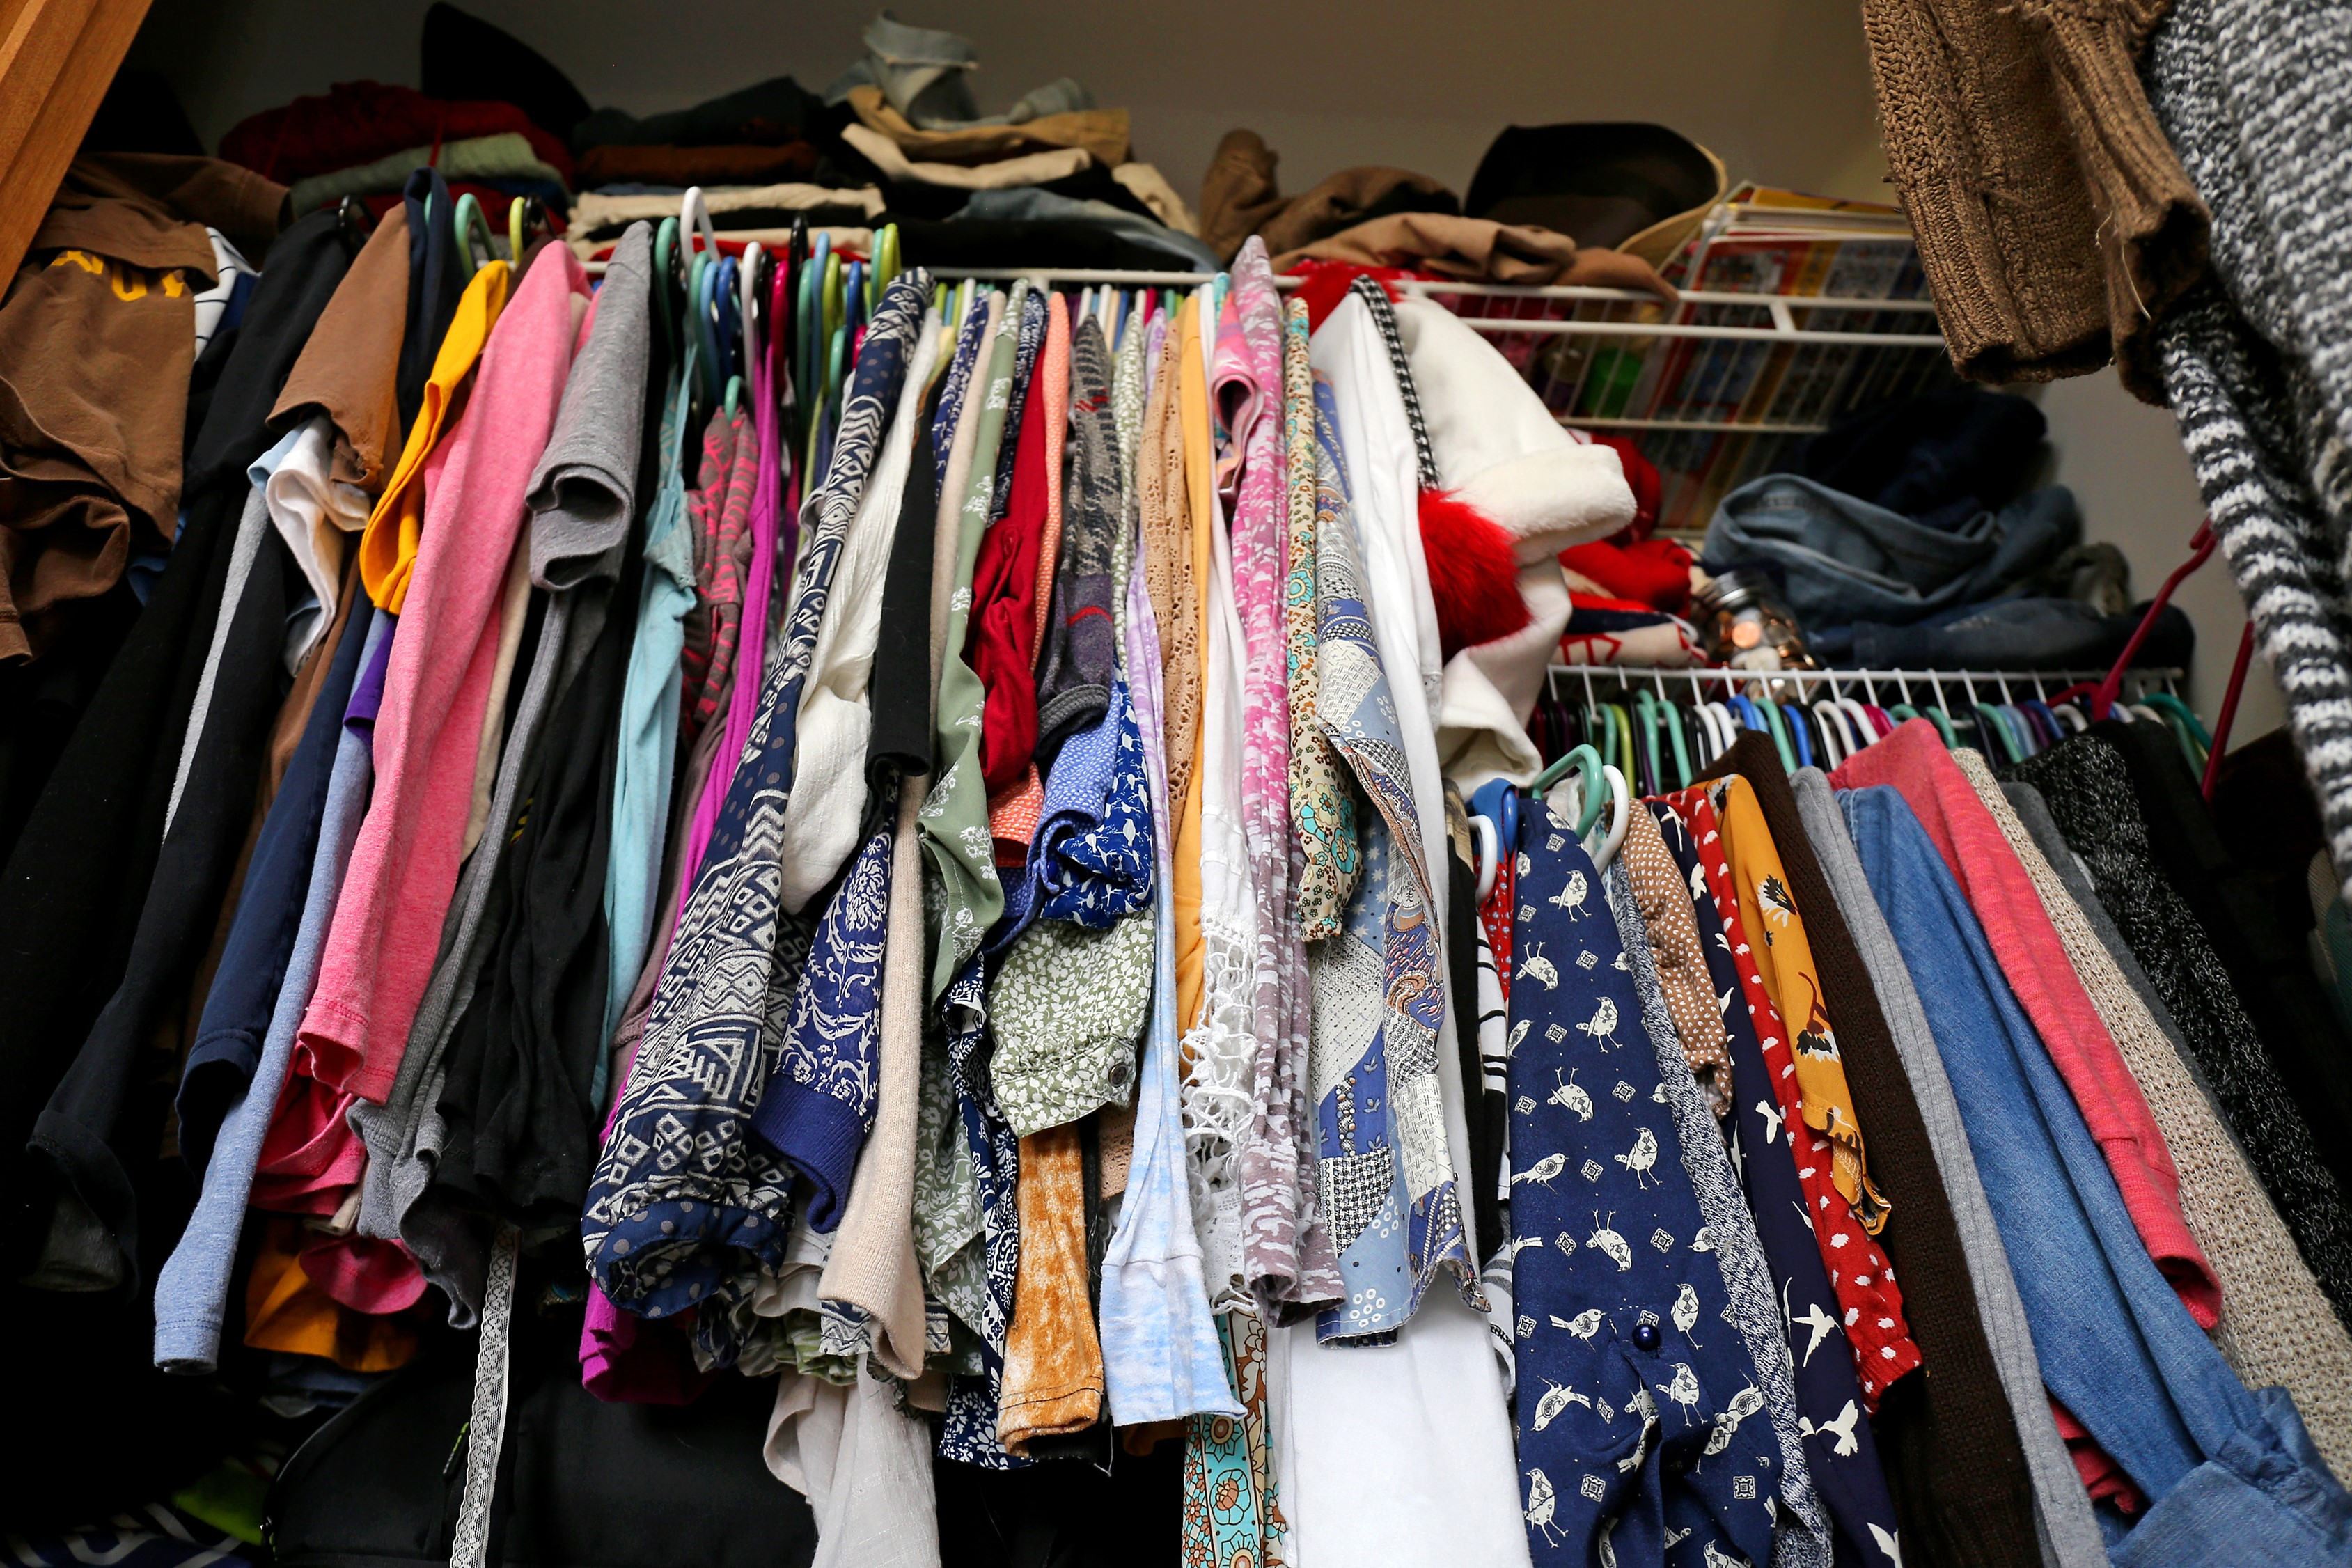 Your closet needs a huge overhaul, but your organization budget is tiny. Some people don't have the cash flow to install a custom designed closet. Never fear, closet organization on a budget is a doable feat. With these tips you'll go from mess to organized bliss in no time!